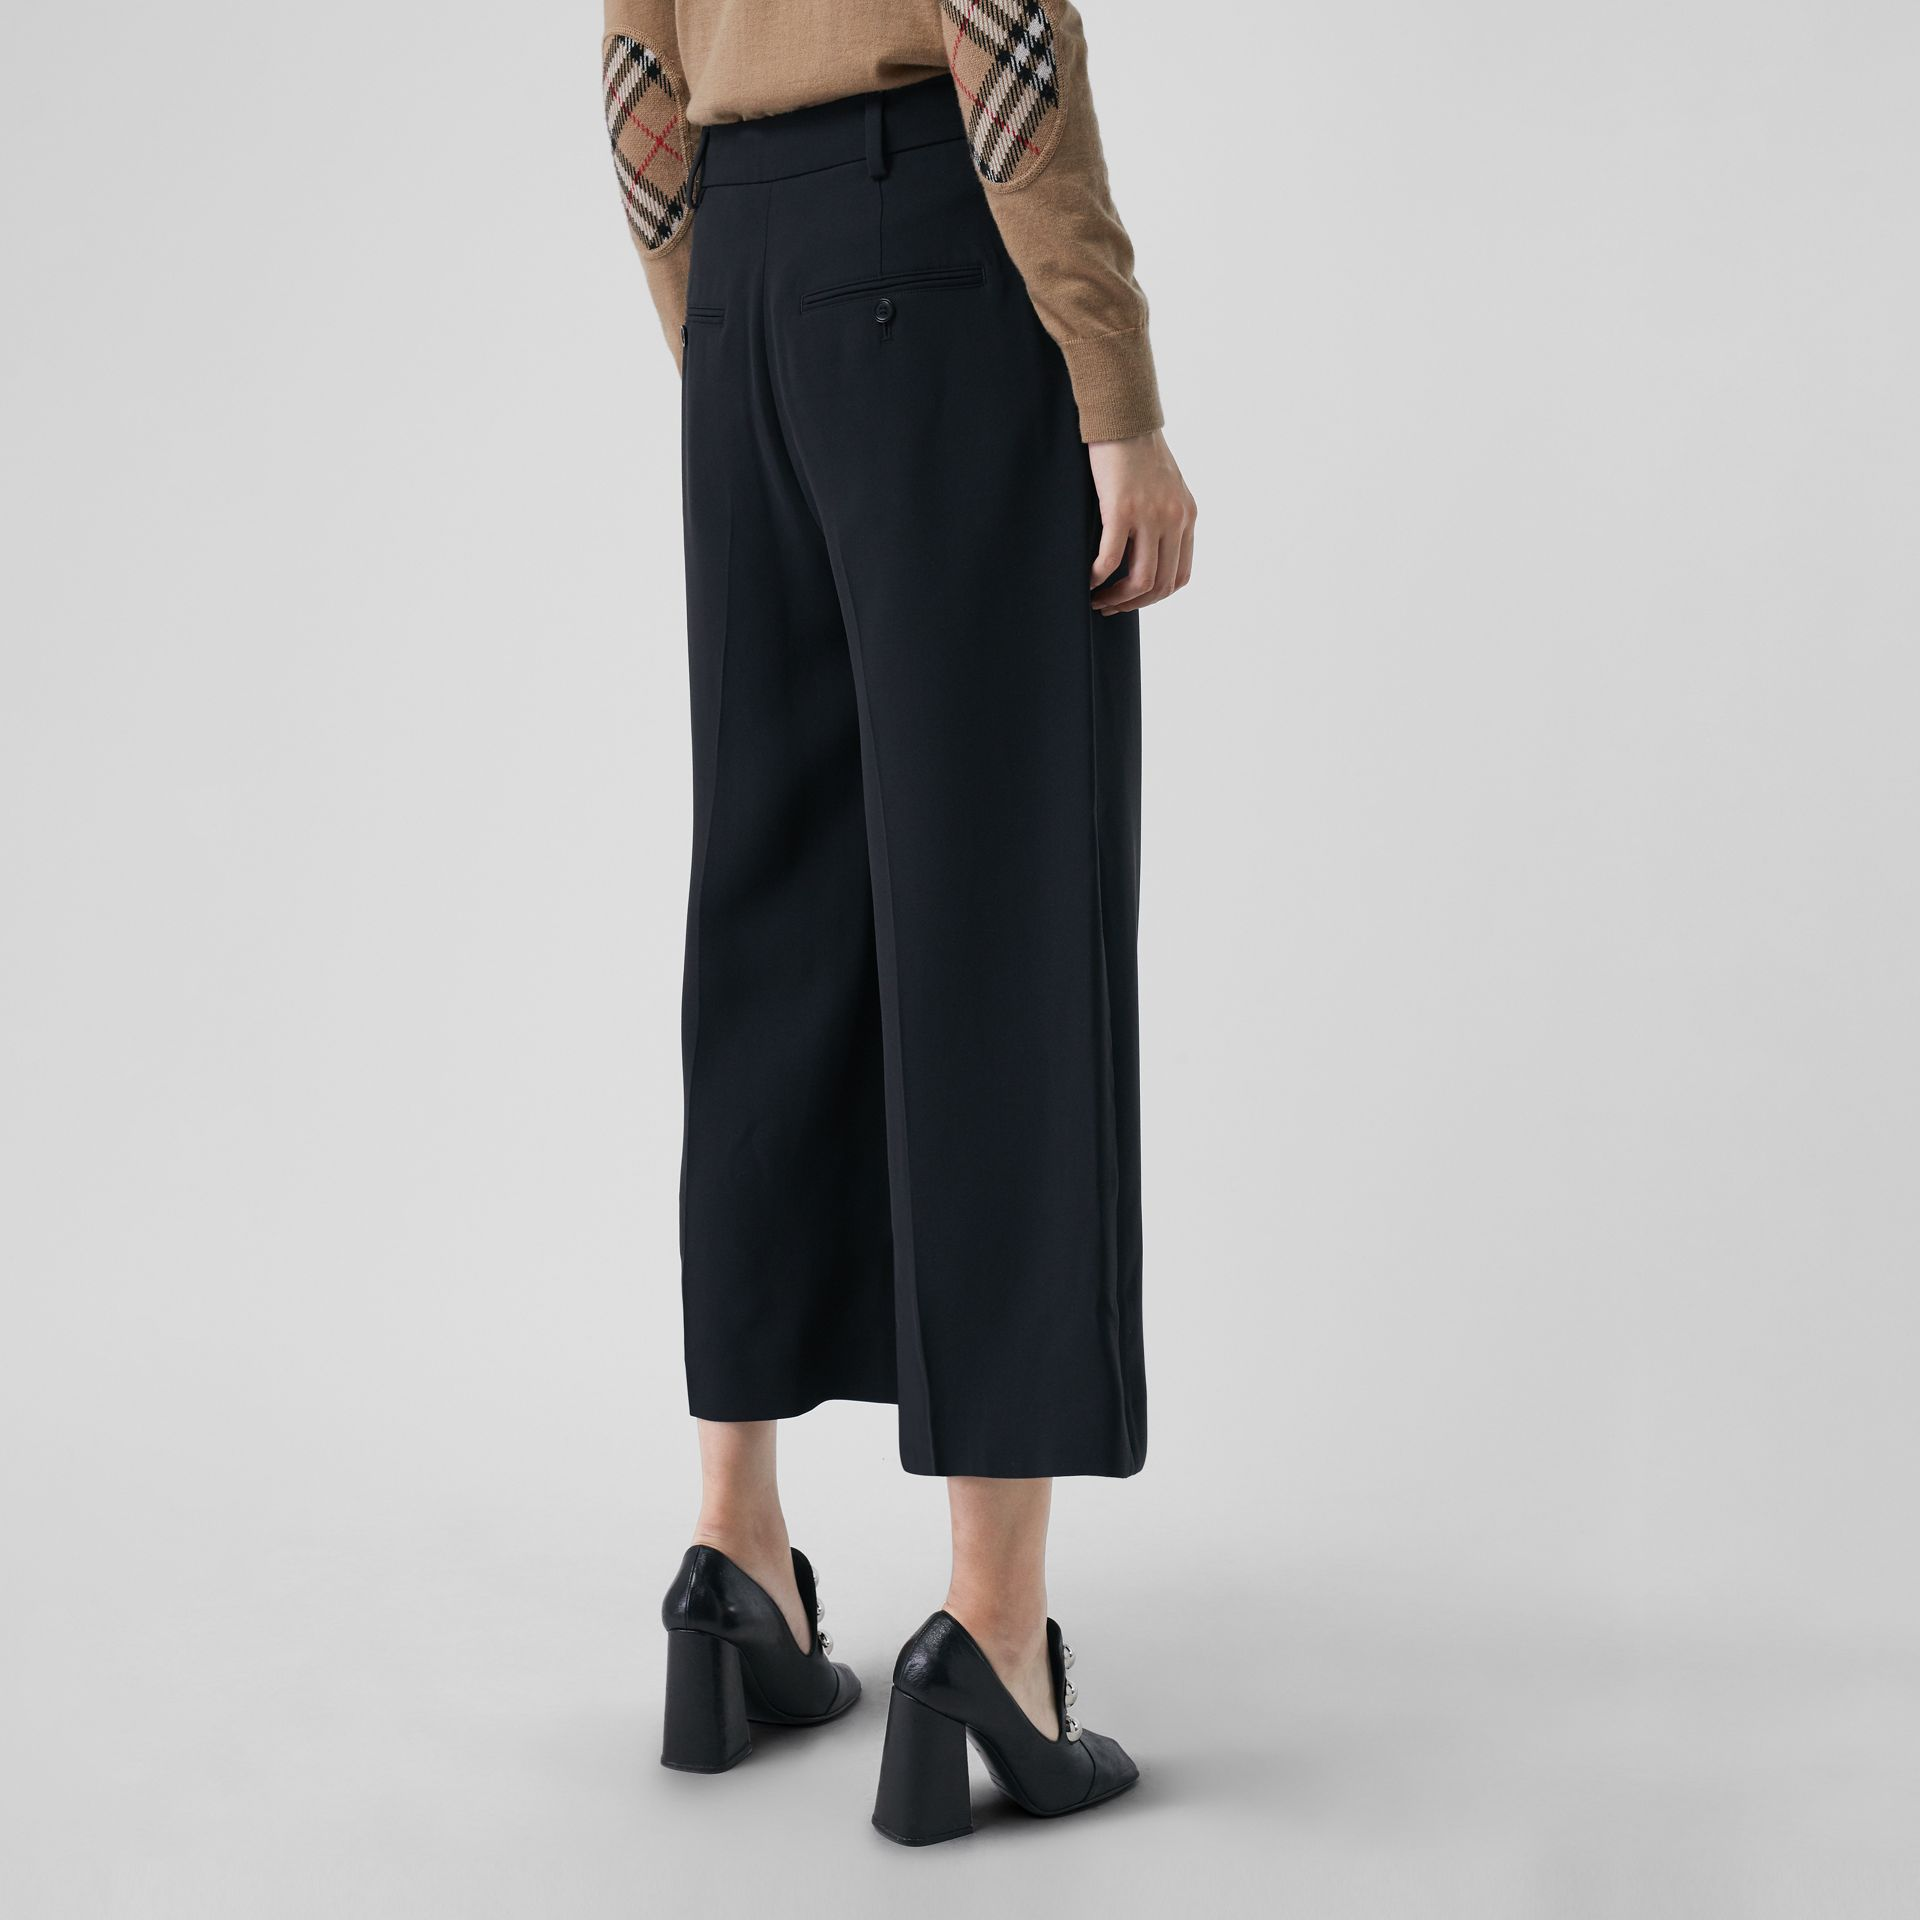 Silk Wool Tailored Culottes in Black - Women | Burberry United Kingdom - gallery image 2